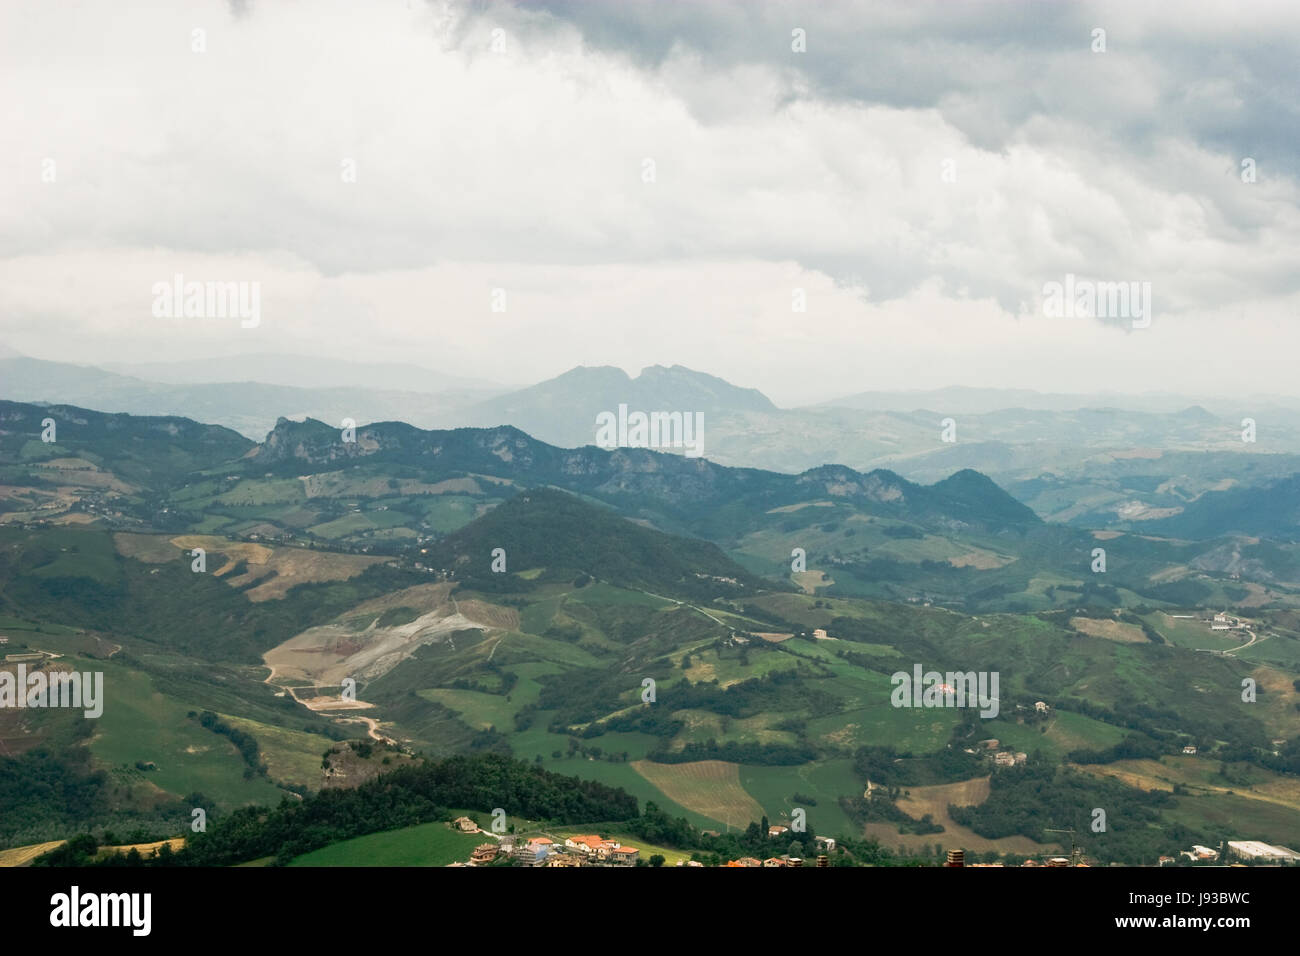 hill, cloud, sight, view, outlook, perspective, vista, panorama, lookout, - Stock Image